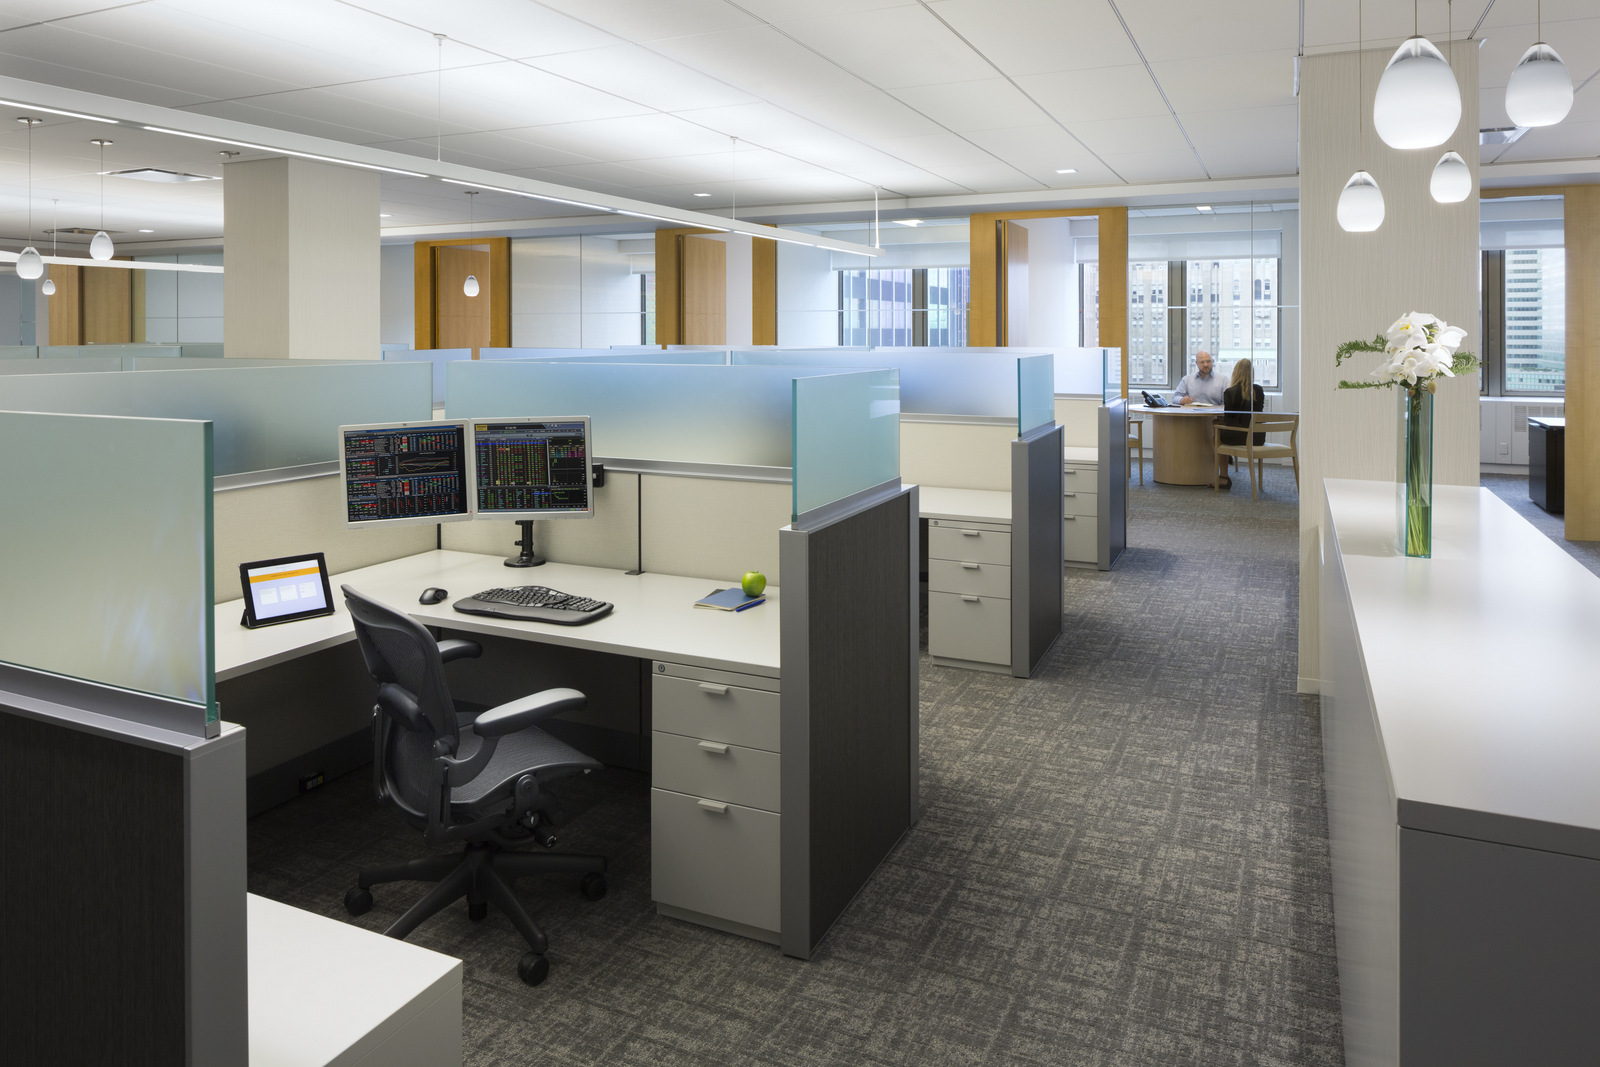 Uncategorized Cubicle Offices cubicle office photo collection snapshots wisdomtree new york city offices